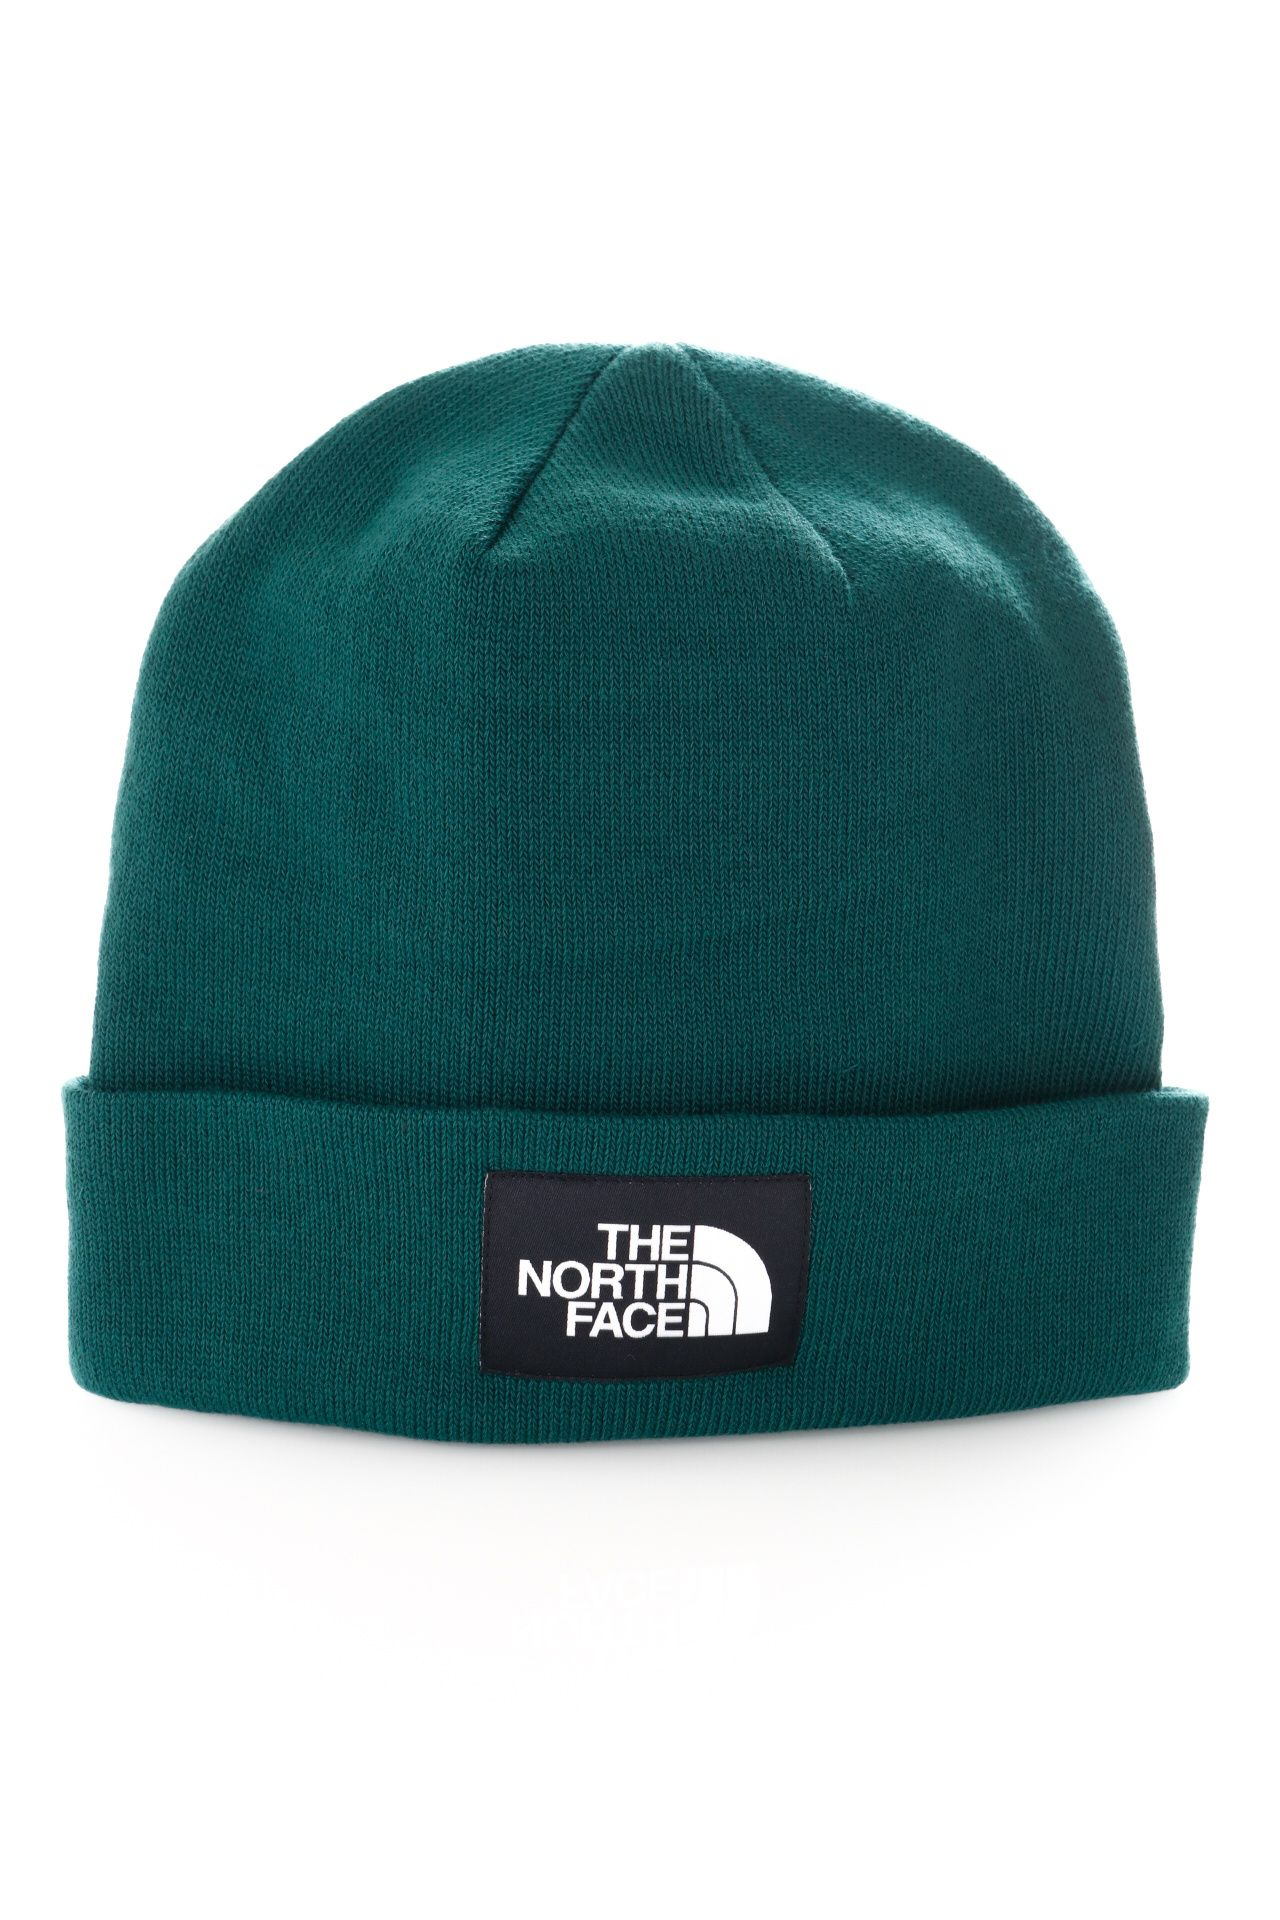 Afbeelding van The North Face Beanie Dock Worker Recycled Beanie Evergreen NF0A3FNTNL11